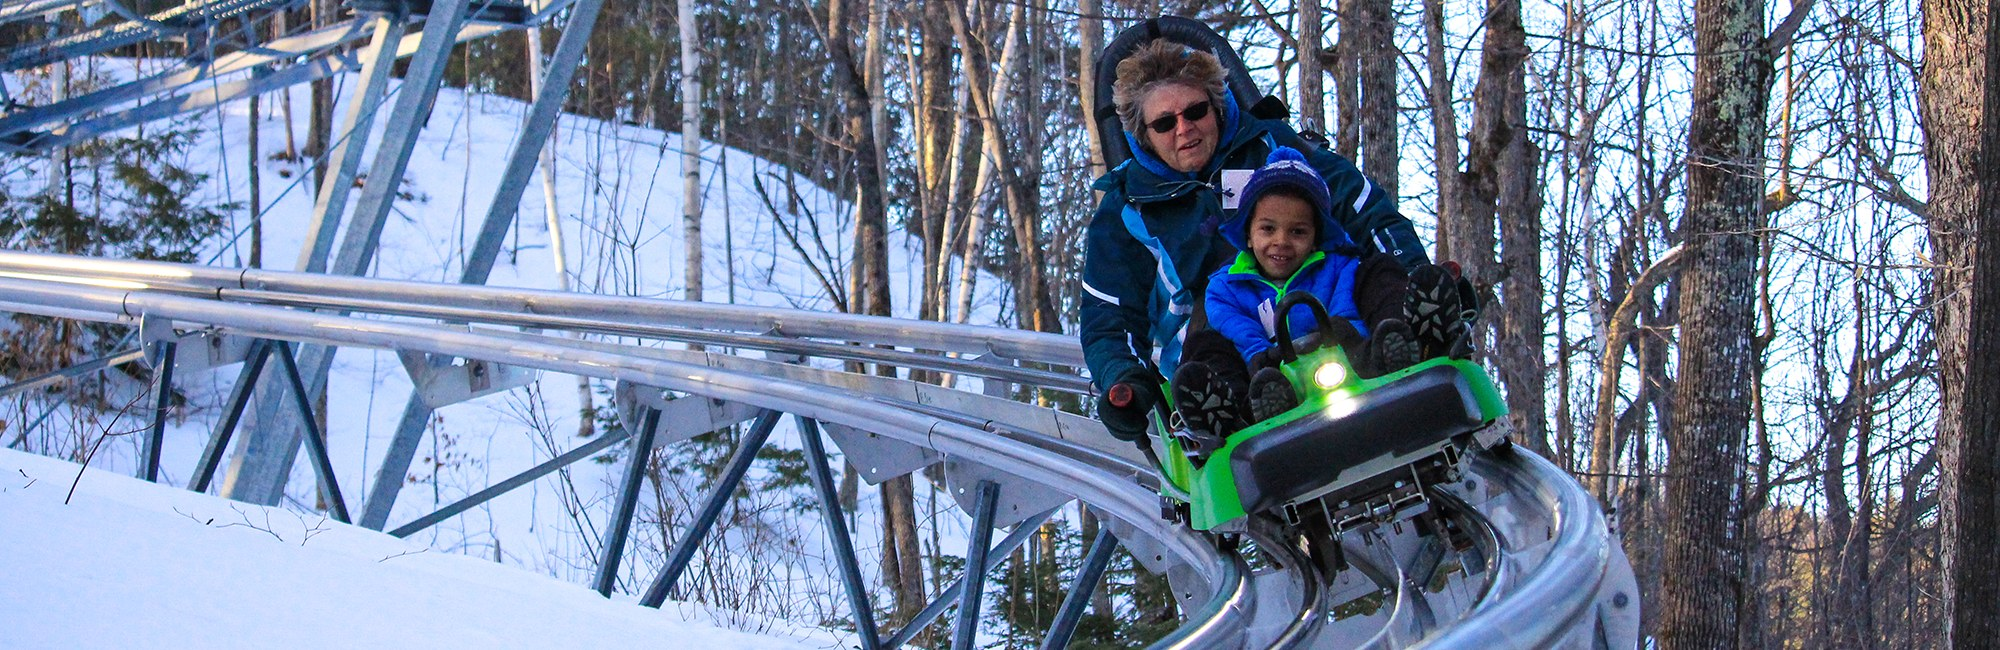 Mountain Coaster in Winter